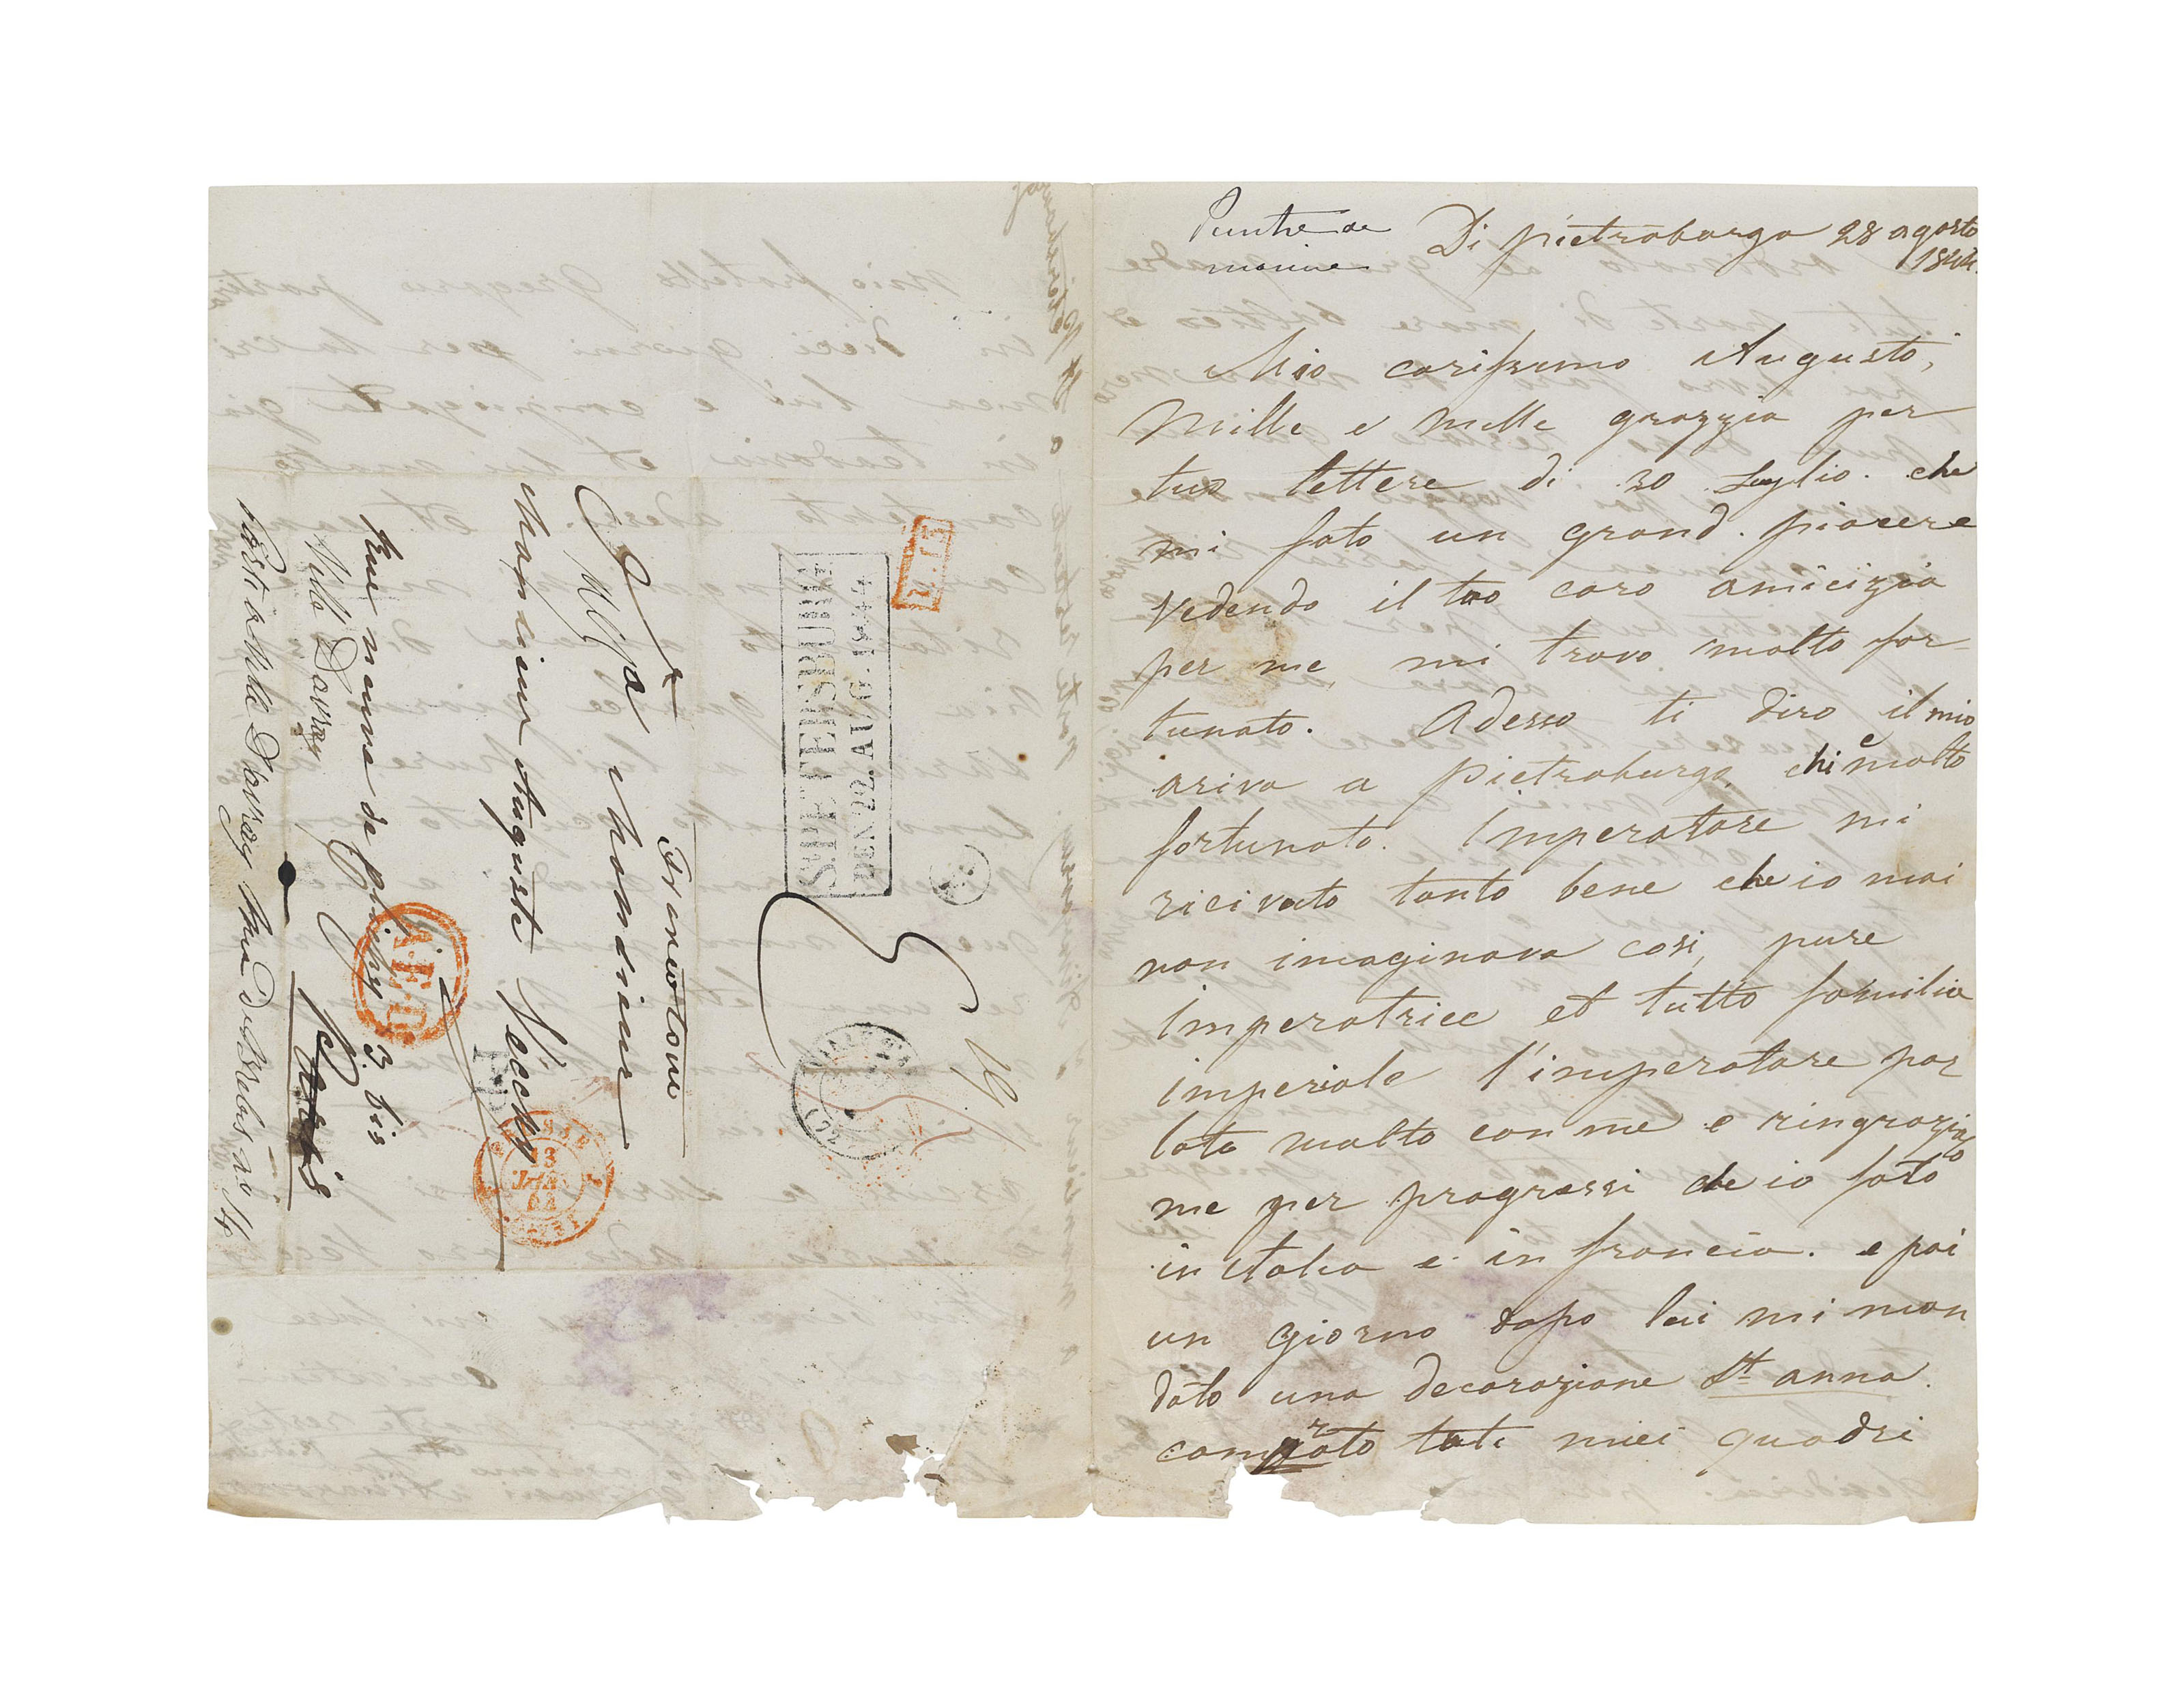 AIVAZOVKSY, Ivan (1817-1900). Autograph letter signed ('Giovani Aivazovsky') to Auguste Vecchy, St Petersburg, 28 August 1844, in eccentric Italian, 3 pages, 4to, integral address panel (old damp staining, causing wear at lower margin, with minor losses to text).